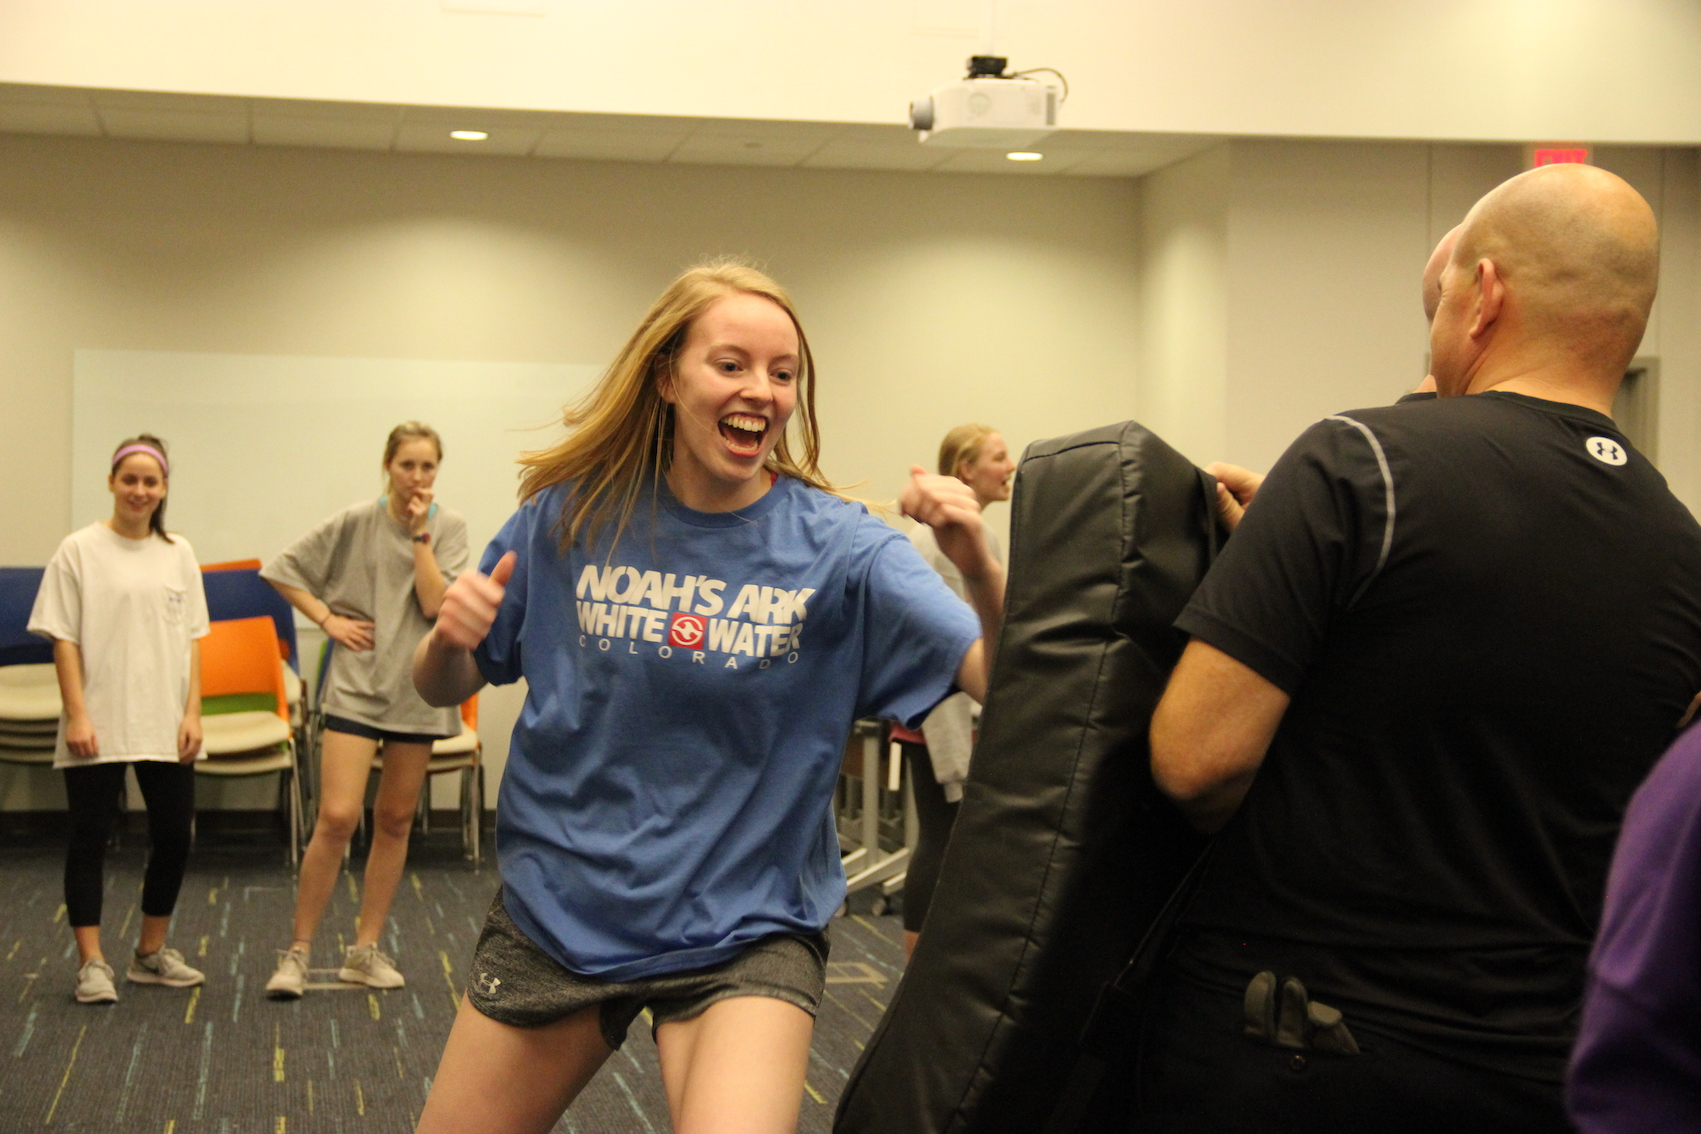 Coppell High School senior Katie Herklotz practices self defense by punching a padded shield held by a Coppell police officer. Senior girls attending CHS and New Tech High@Coppell were offered a free safety course to prepare them for being on their own in college.